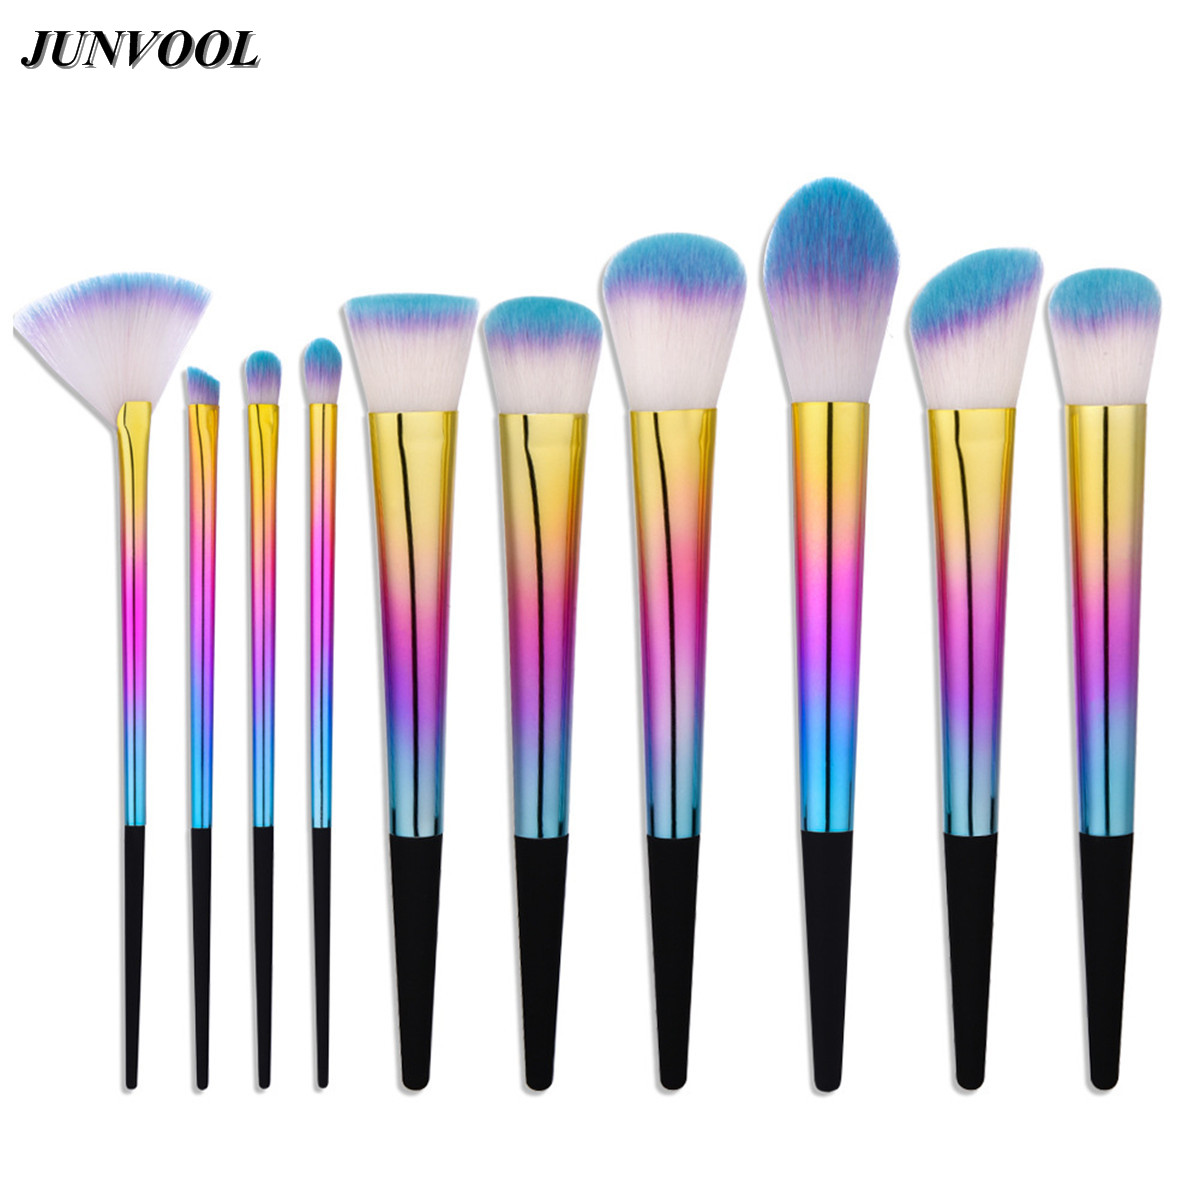 Fan Cosmetic Makeup Brushes Set 10pcs Dazzle Color Facial Cheek Eyebrow Eyeshadow Powder Foundation Brush Pincel Maquiagem 8pcs beauty makeup brushes set eyeshadow blending brush powder foundation eyebrow lip cosmetic make up tools pincel maquiagem